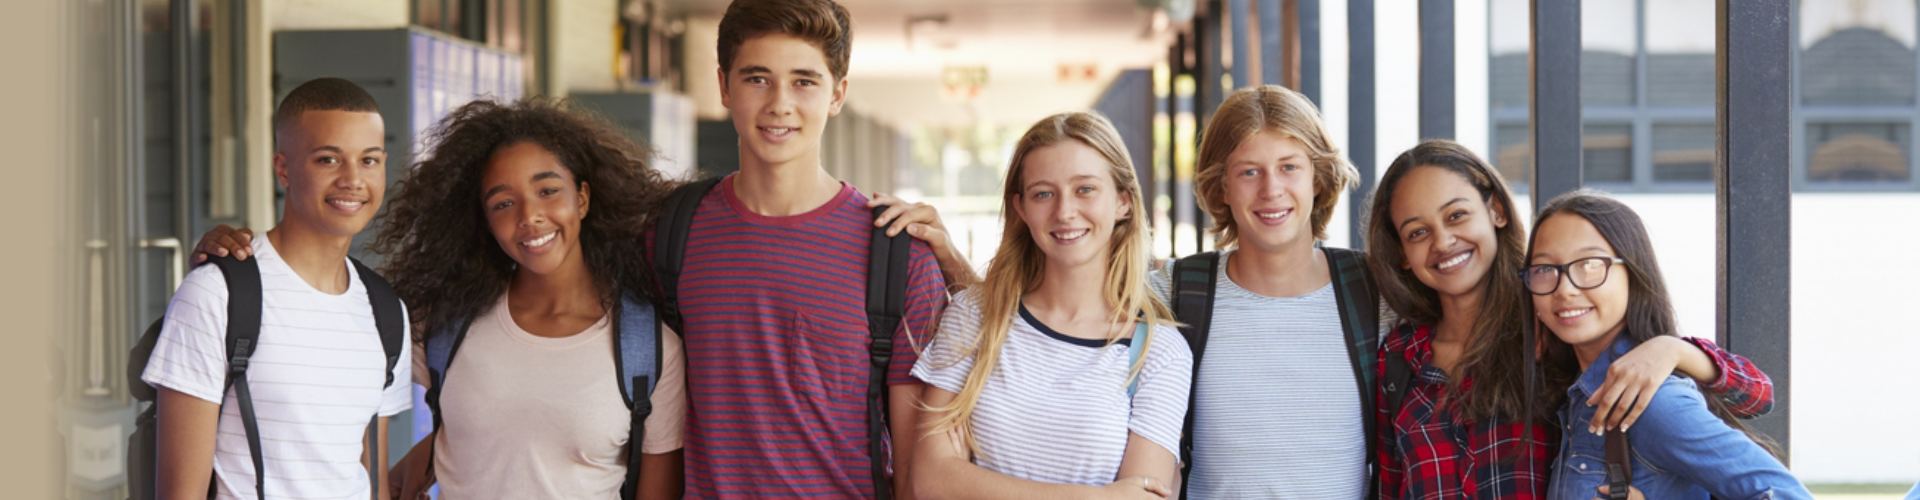 group of students standing and smiling